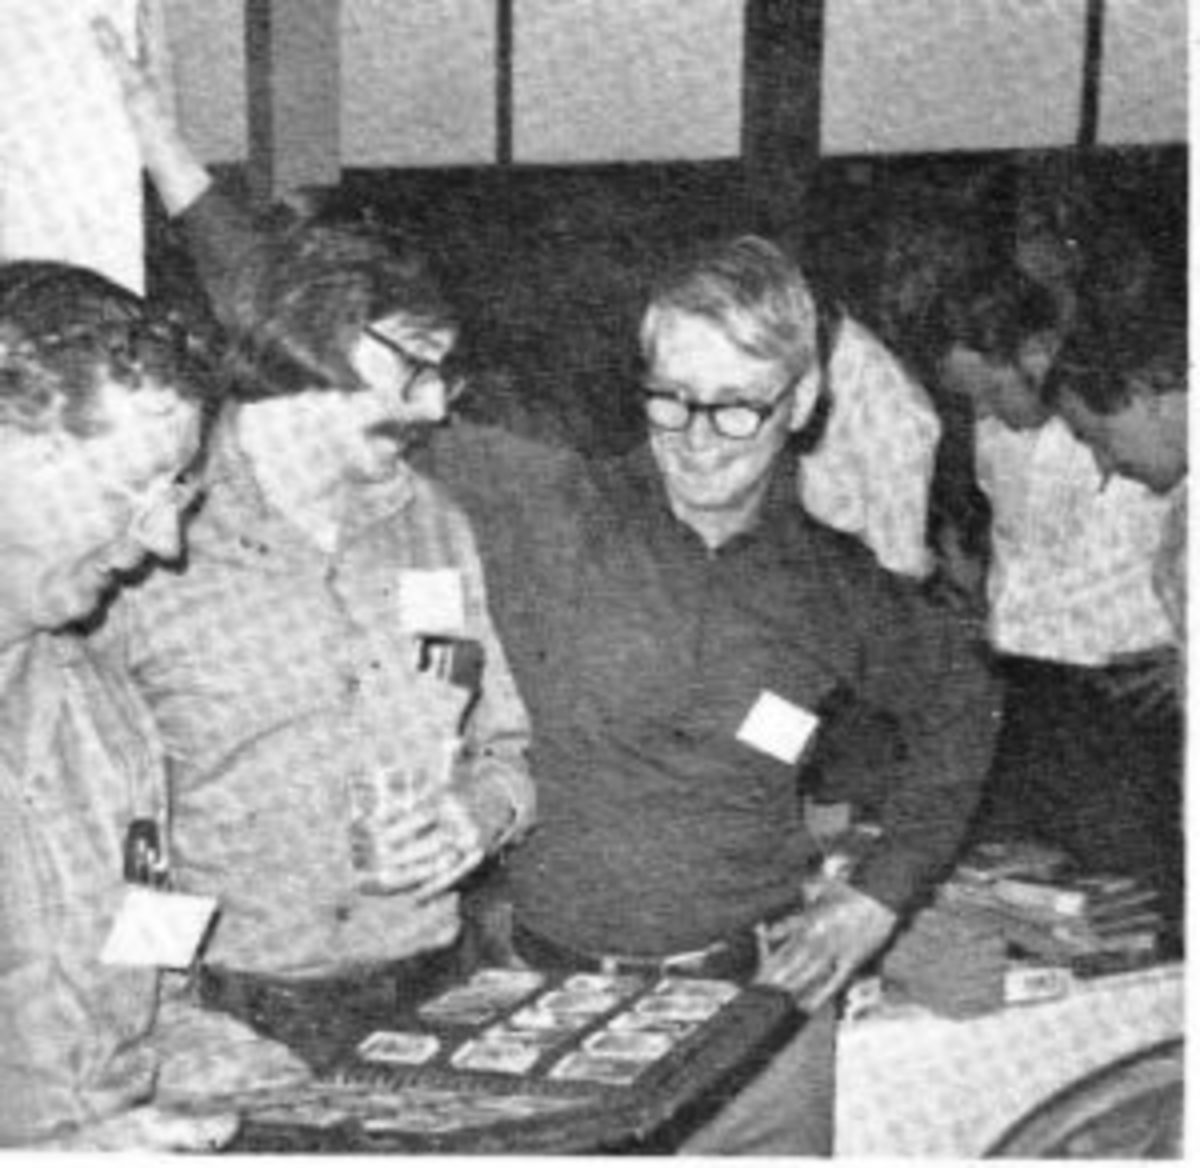 Lionel Carter, Rich Egan, and Gar Miller (left to right) at a Chicago Convention in 1973.